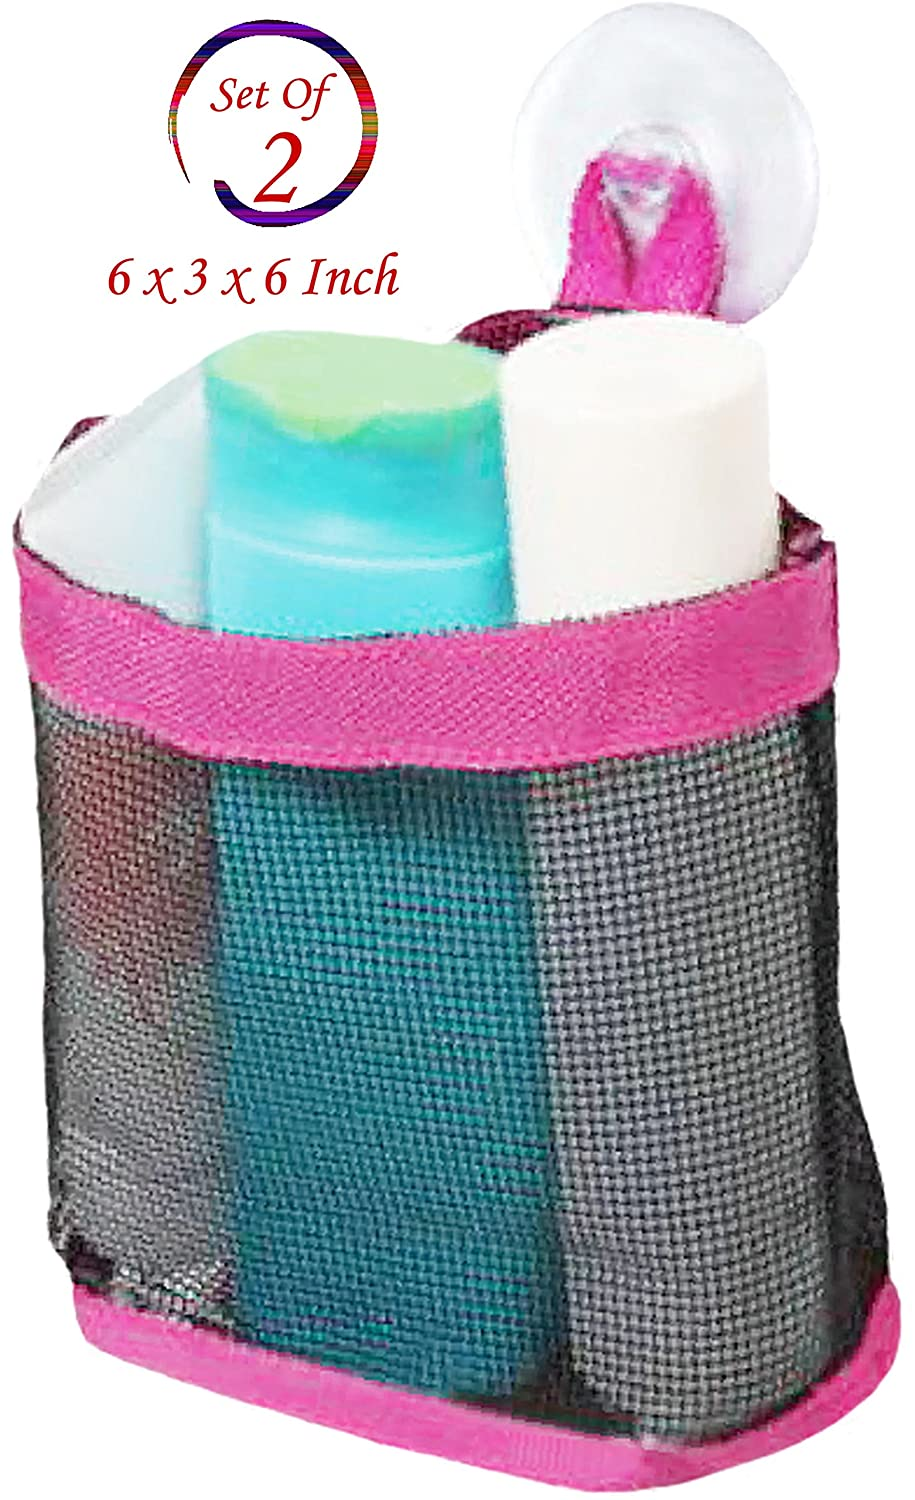 Amazon.com: Set of 2 Mesh Bath and Hanging Toiletry, Shower ...